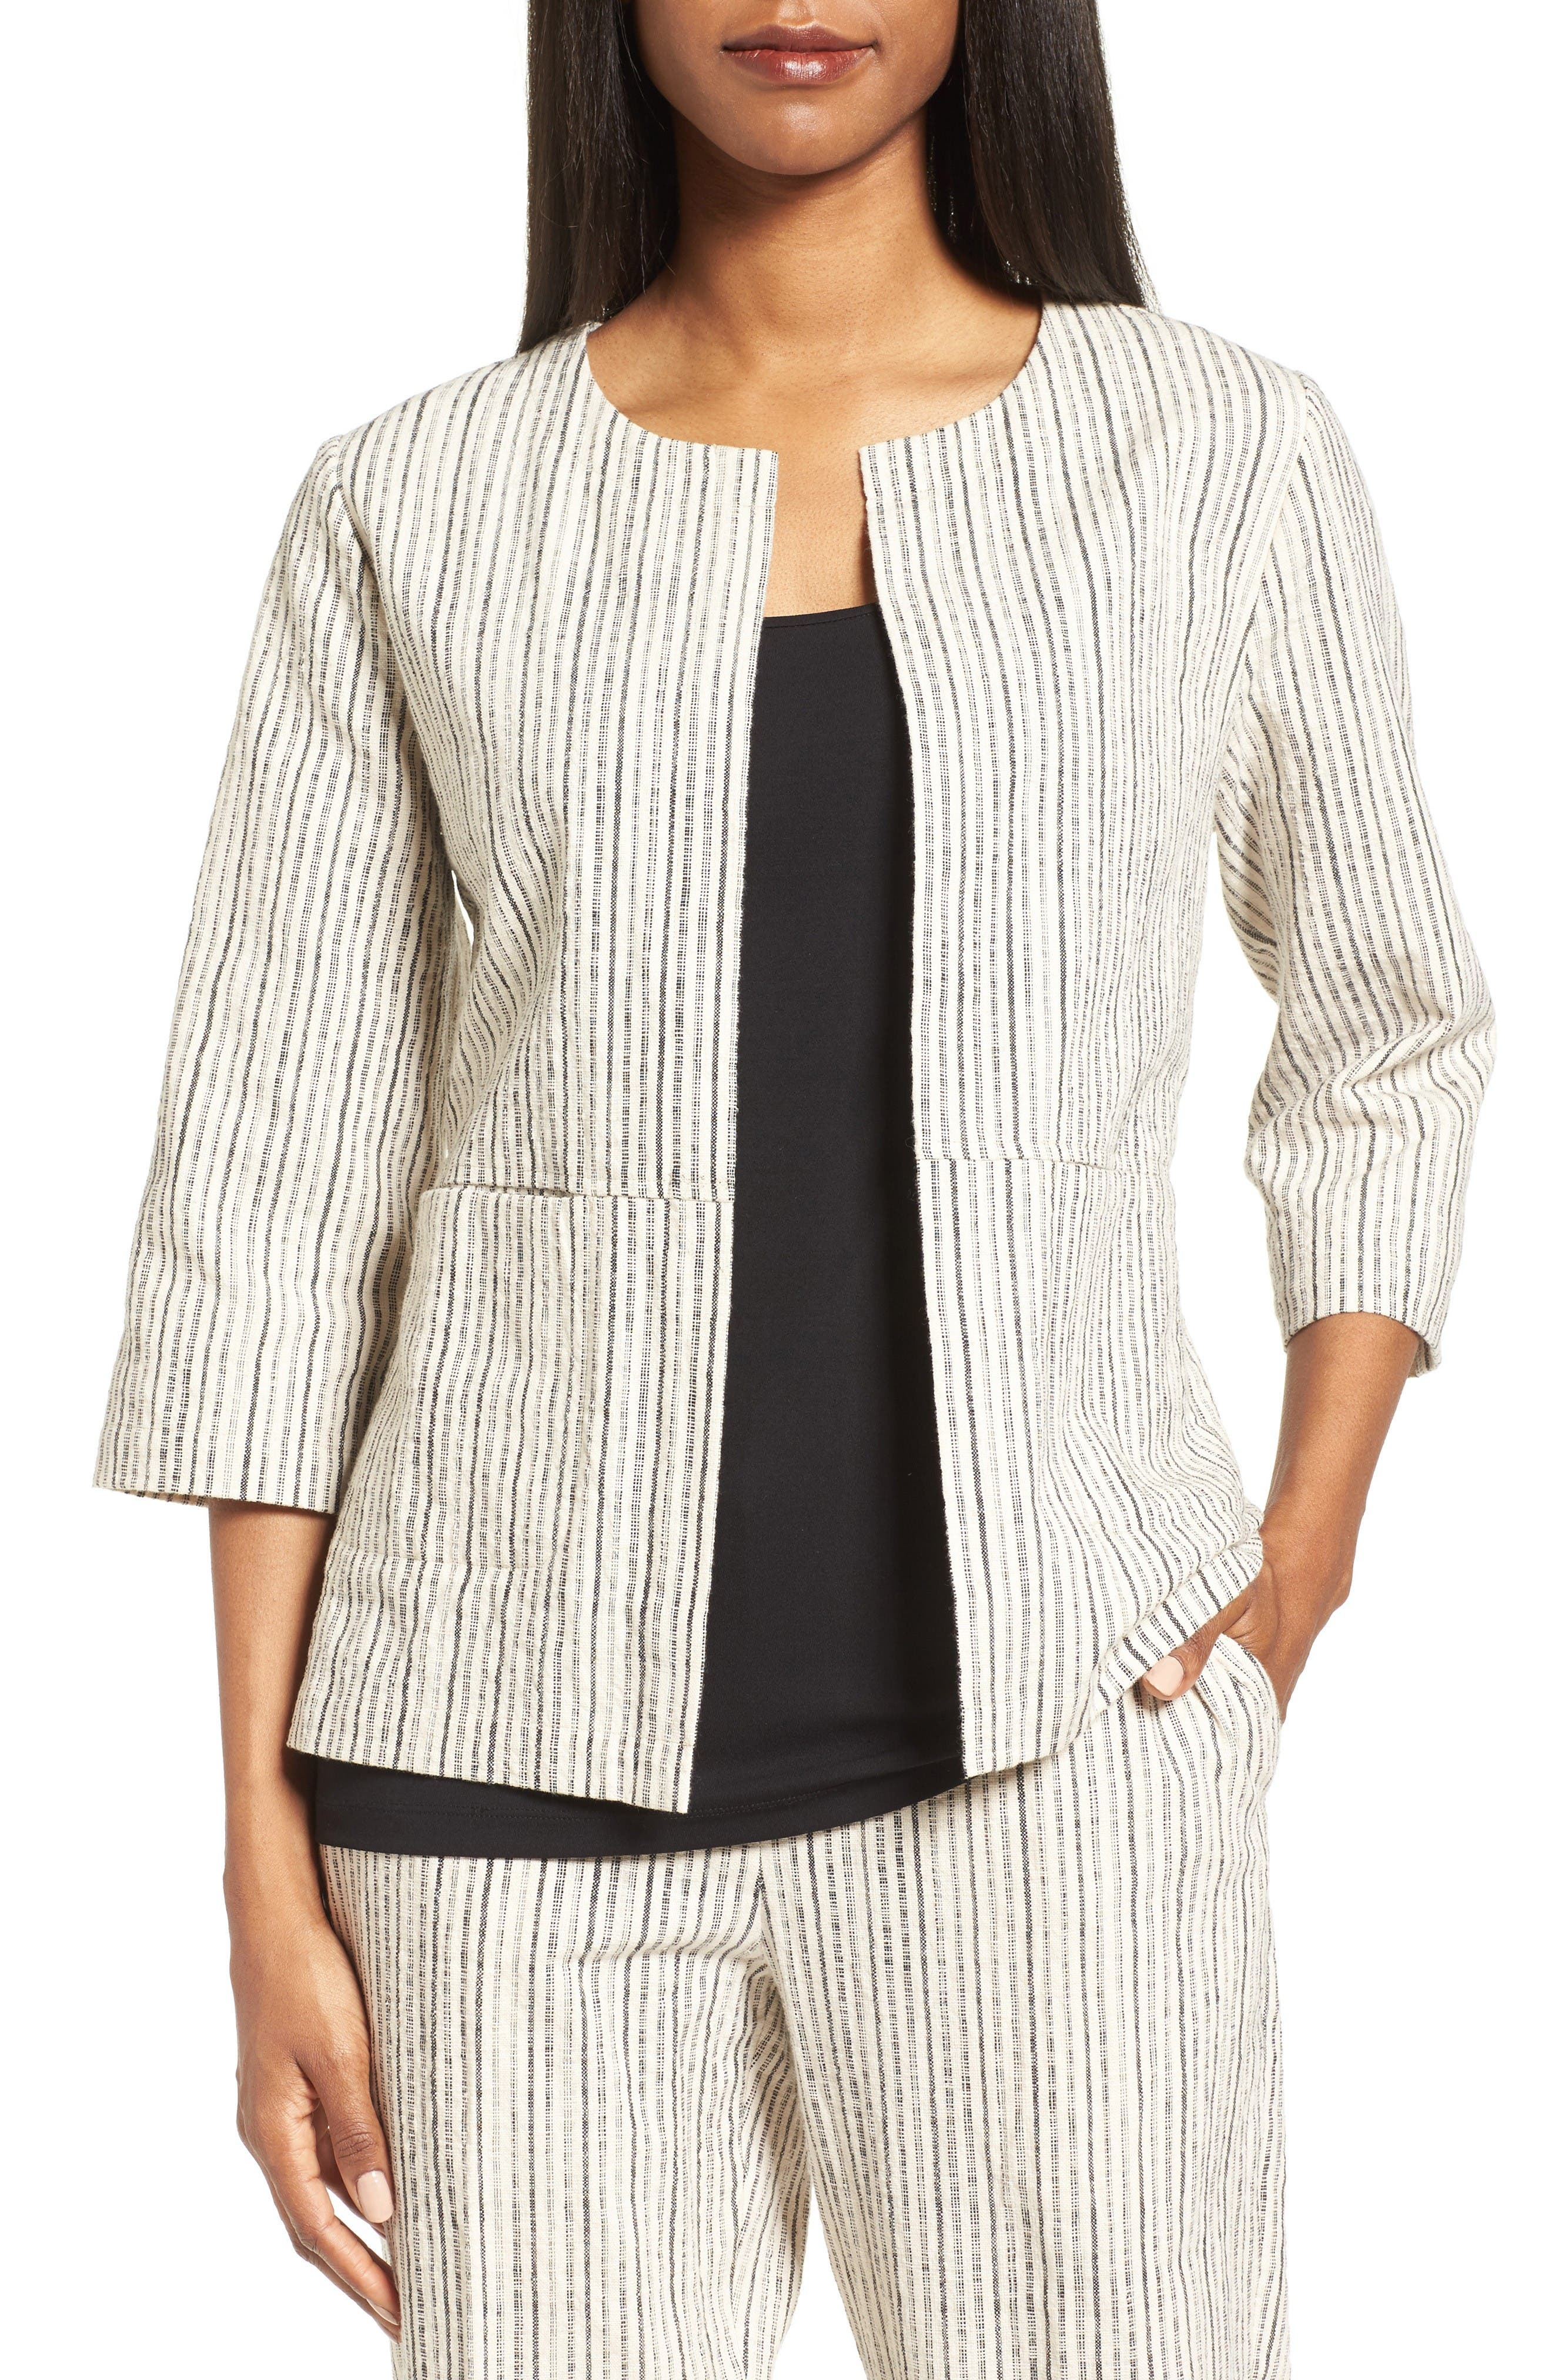 Alternate Image 1 Selected - Eileen Fisher Organic Cotton Round Neck Jacket (Nordstrom Exclusive)